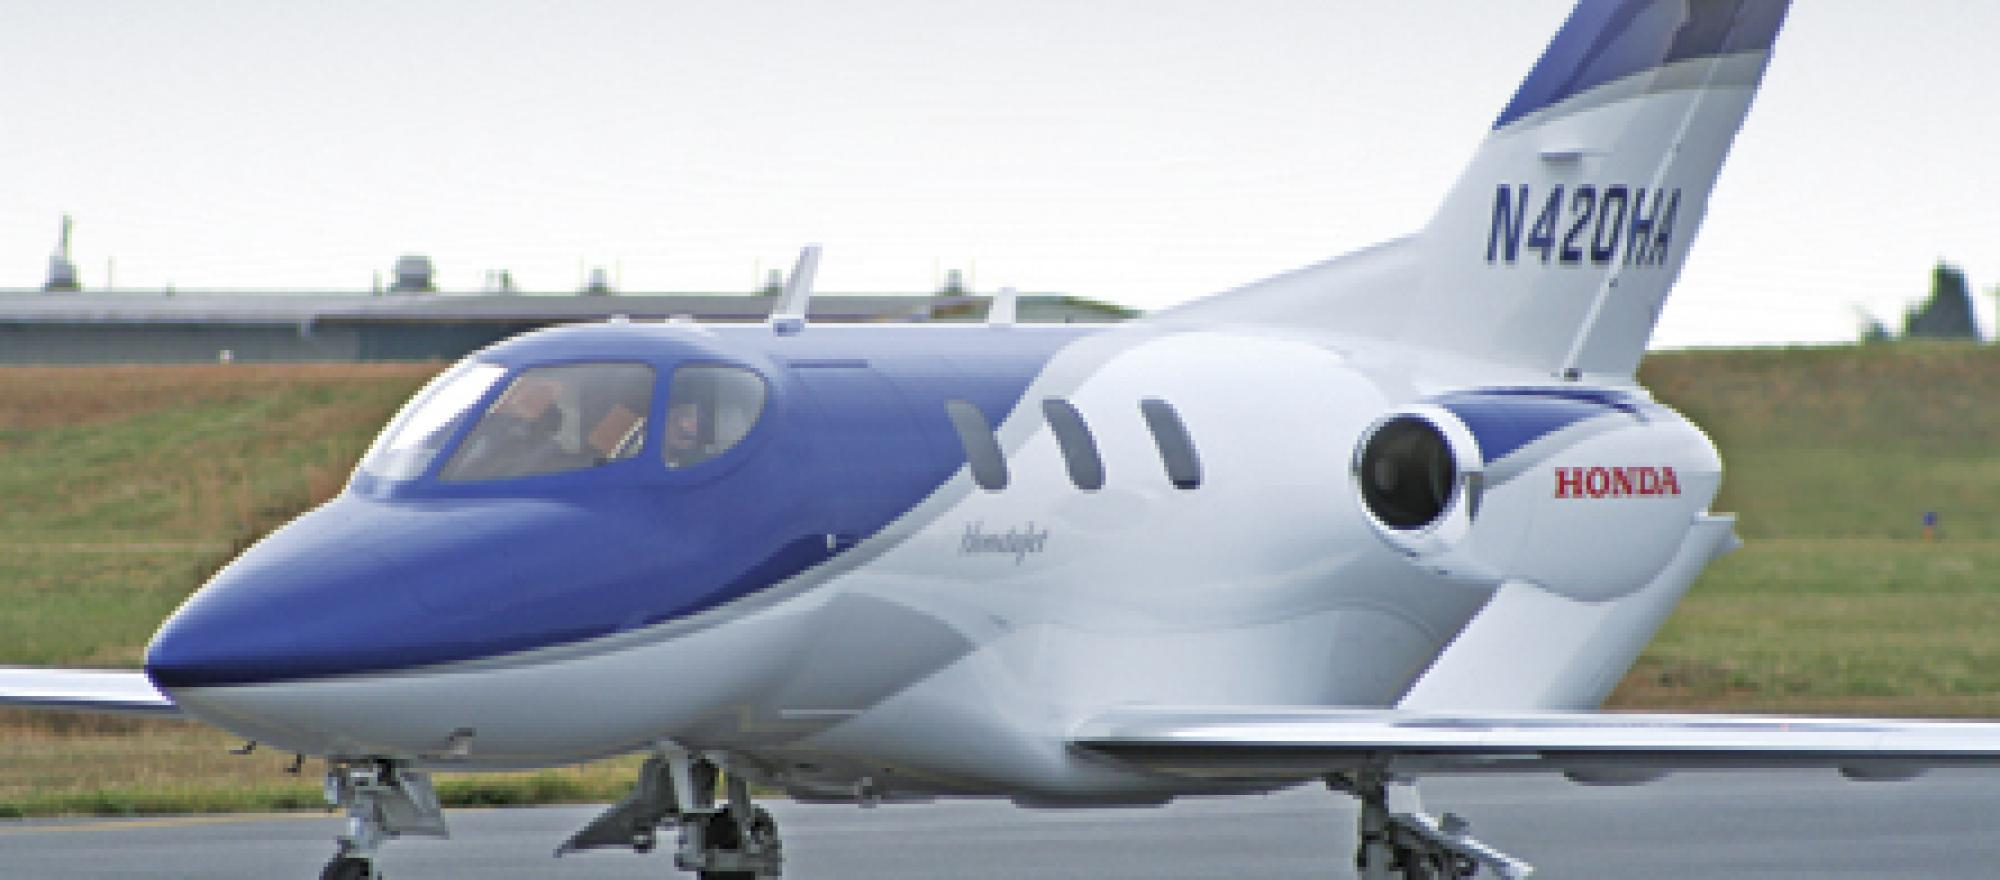 Honda 39 s big bet business jet traveler for How much is a honda jet